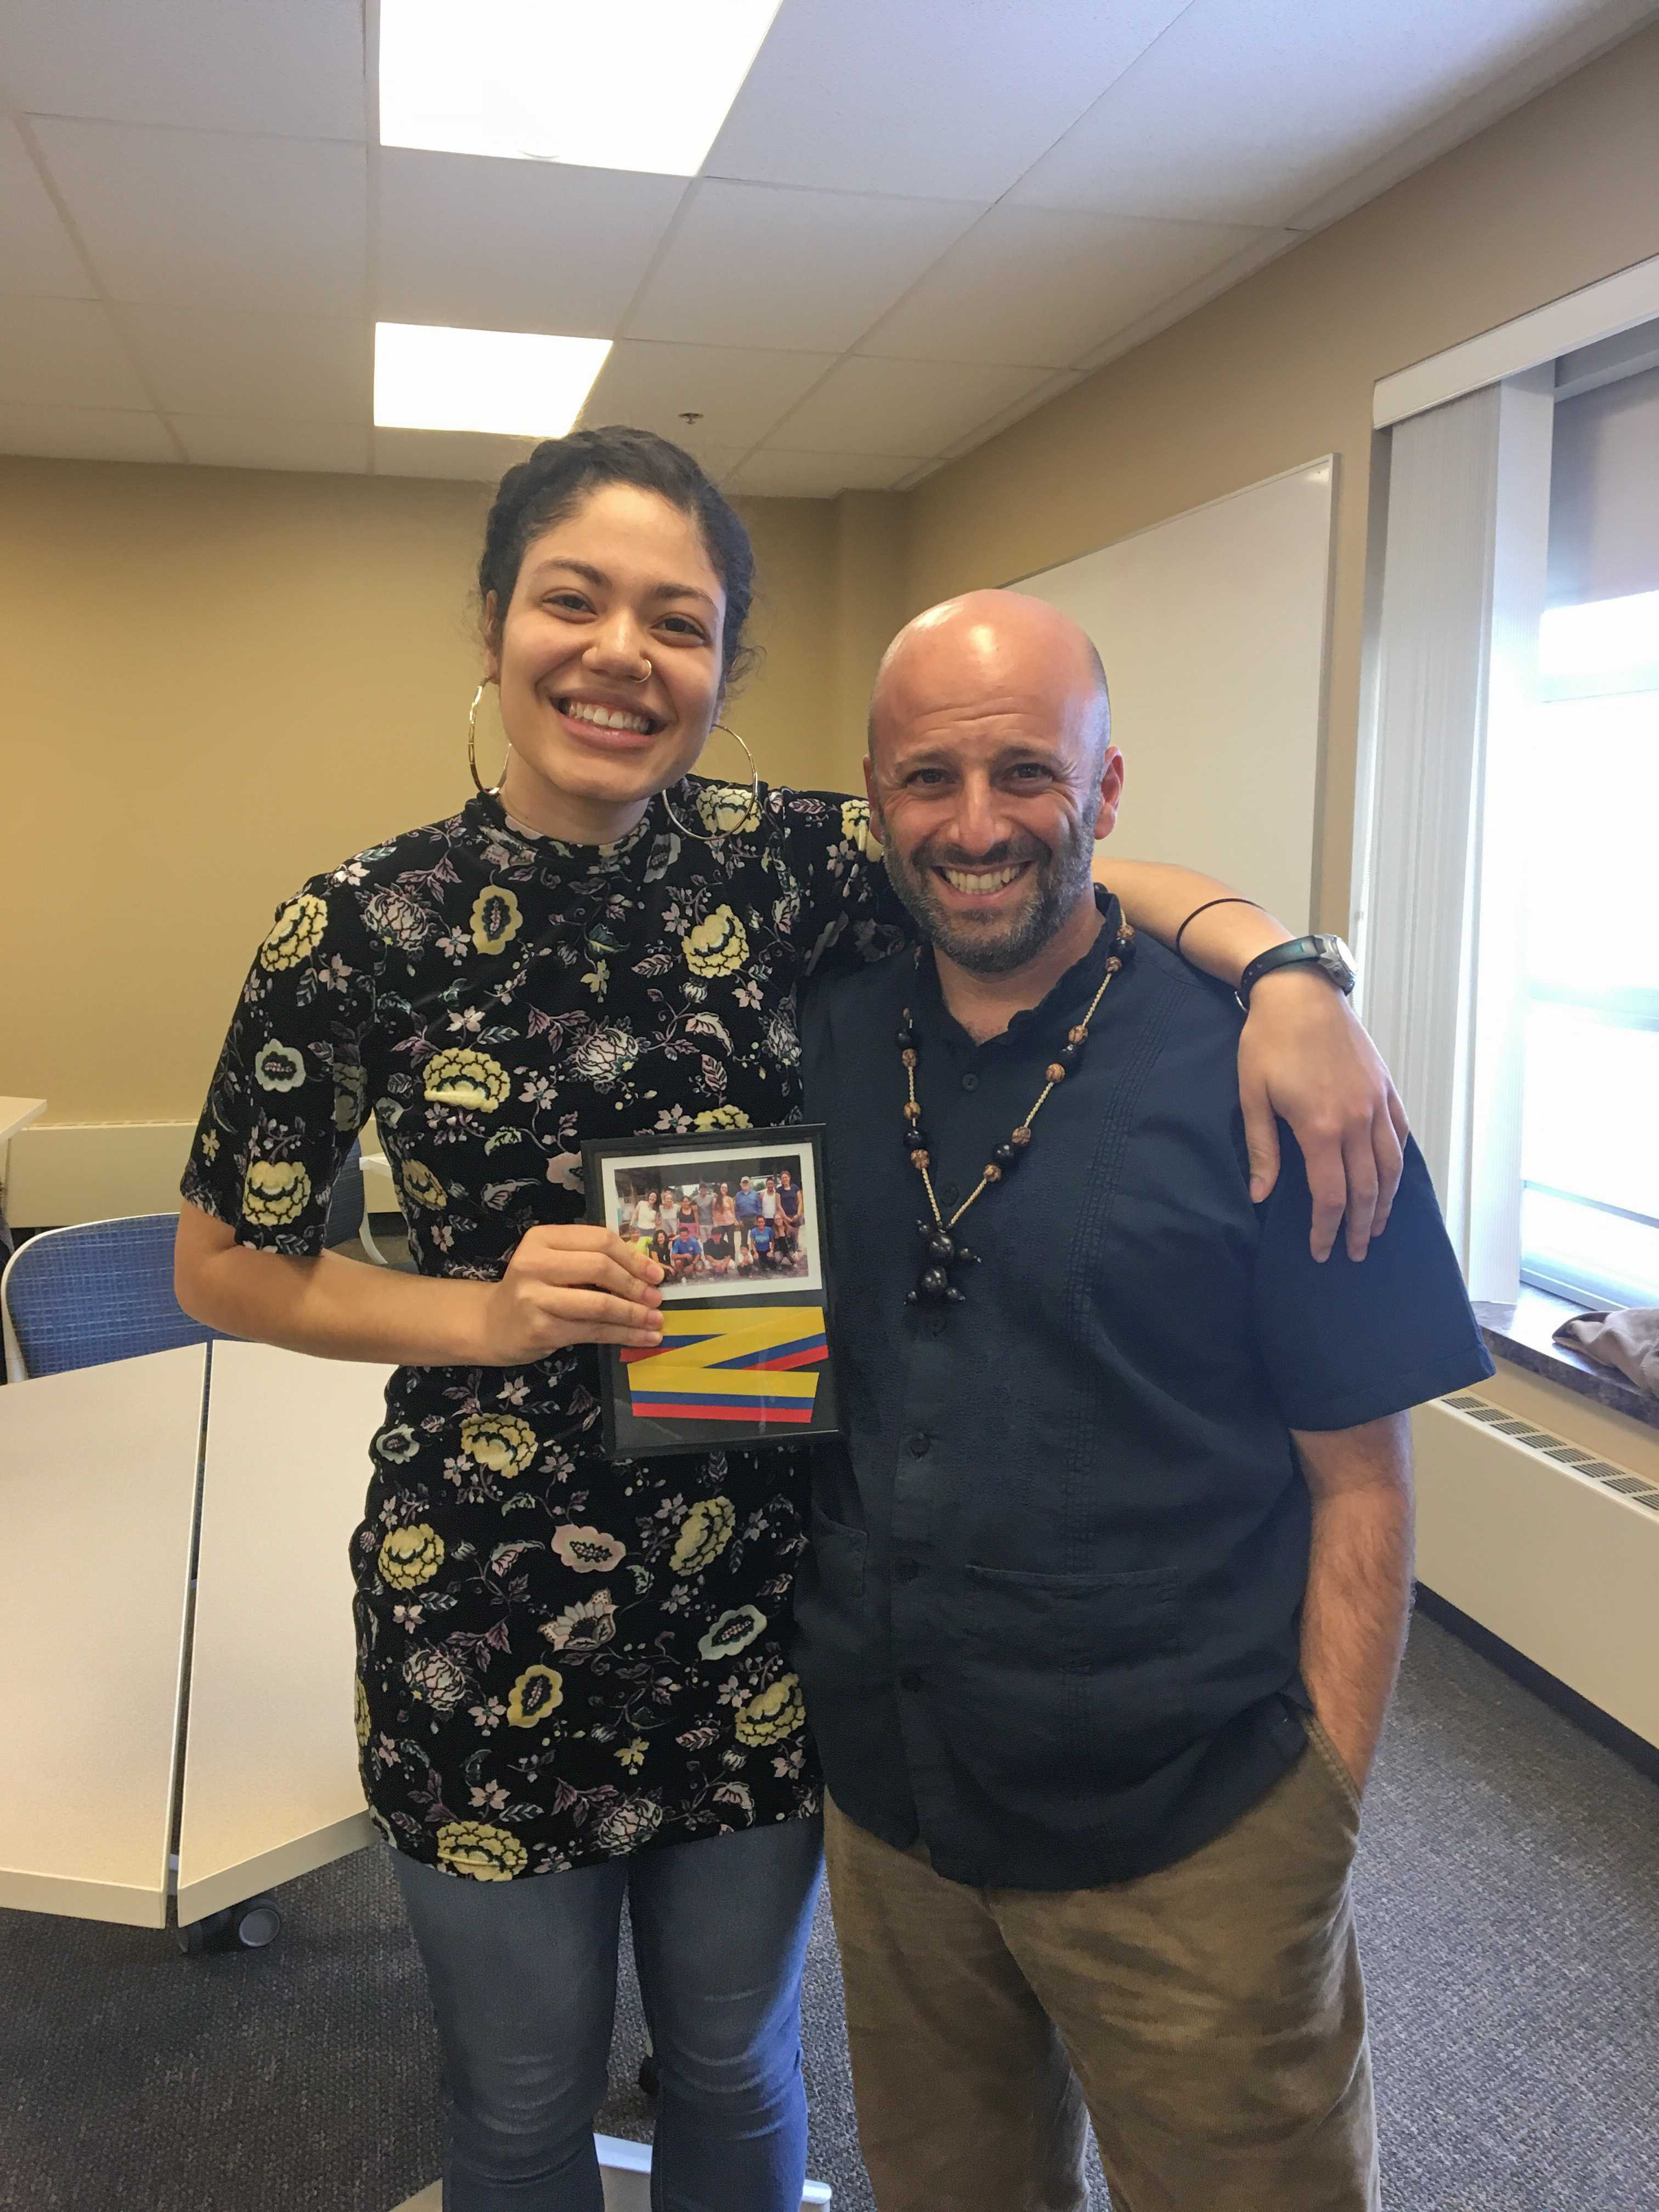 Giselle Lora '18 with Rehearsing Change program director, Daniel Bryan, with an award made of a section of the ribbon from the opening ceremony of the new stage in La Mariscal, Ecuador, a project Lora proposed while studying away.